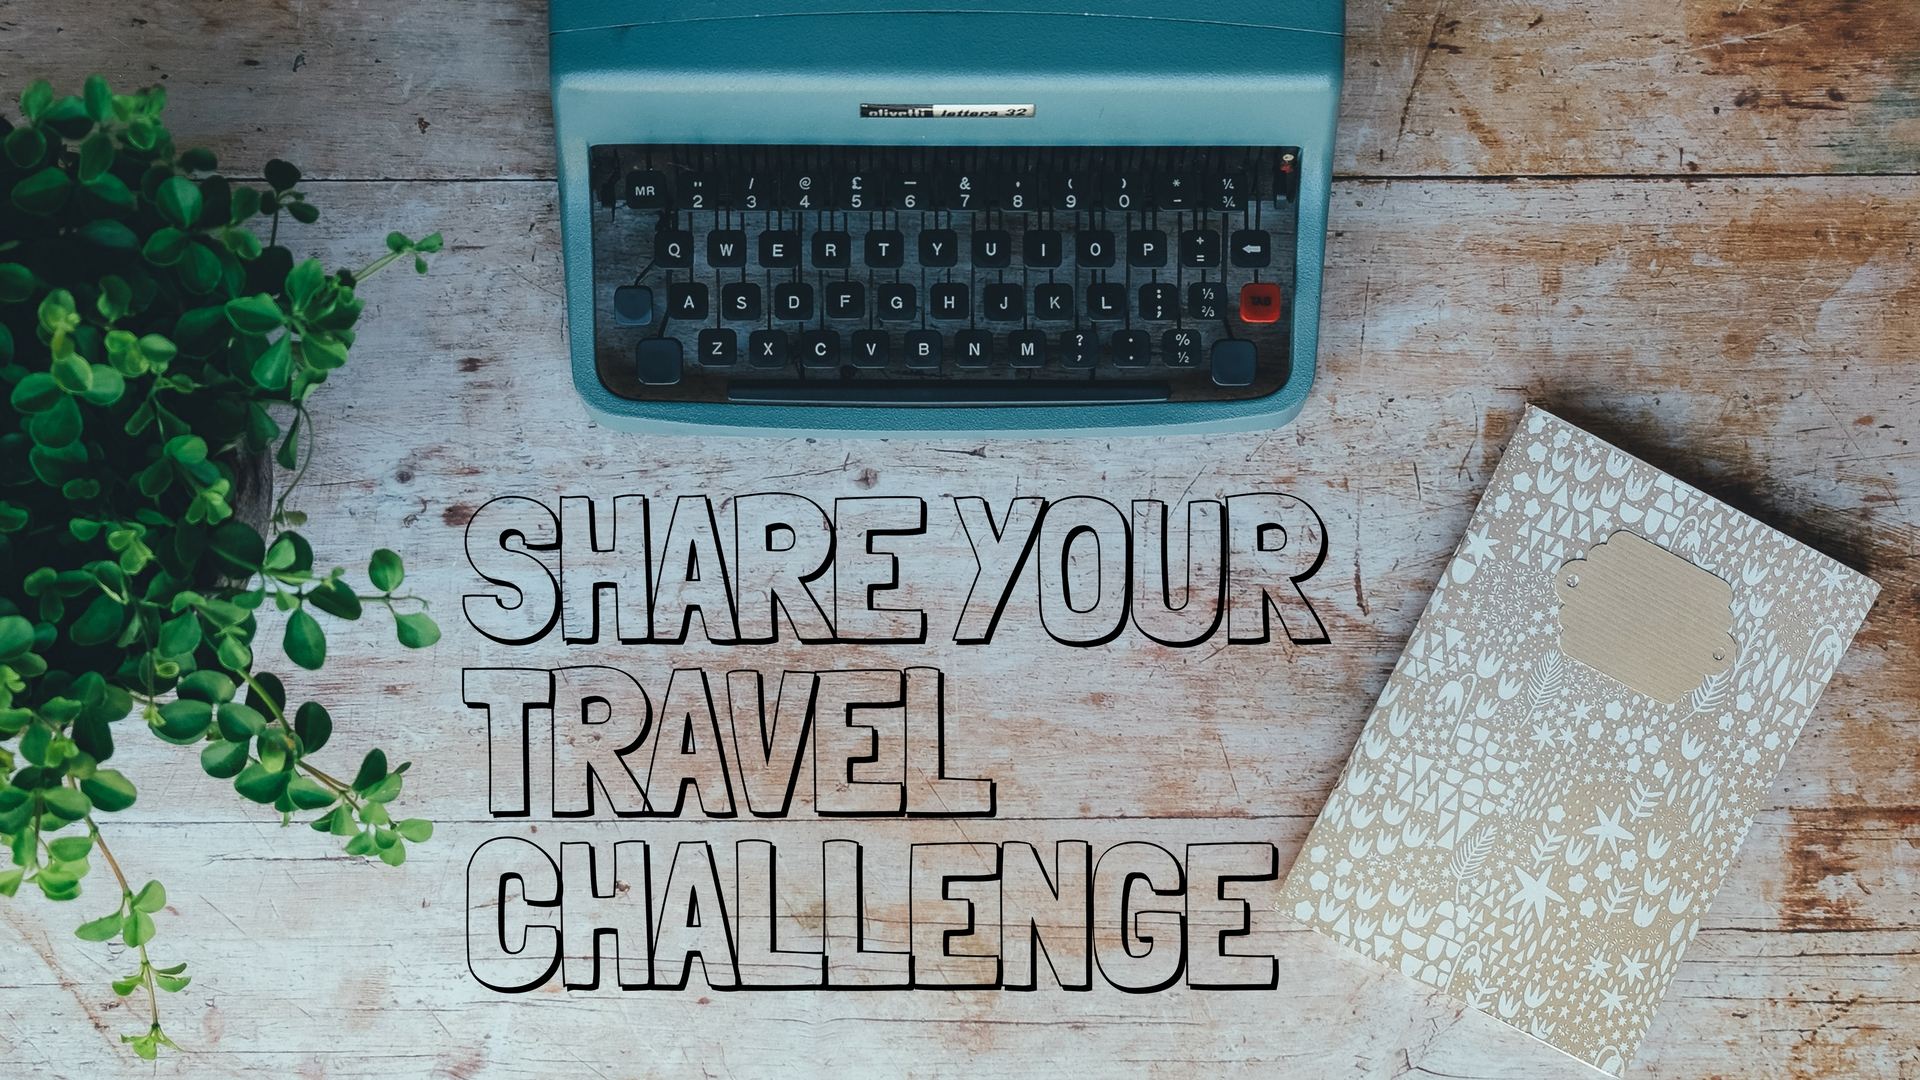 Tell the story of your personal travel challenge